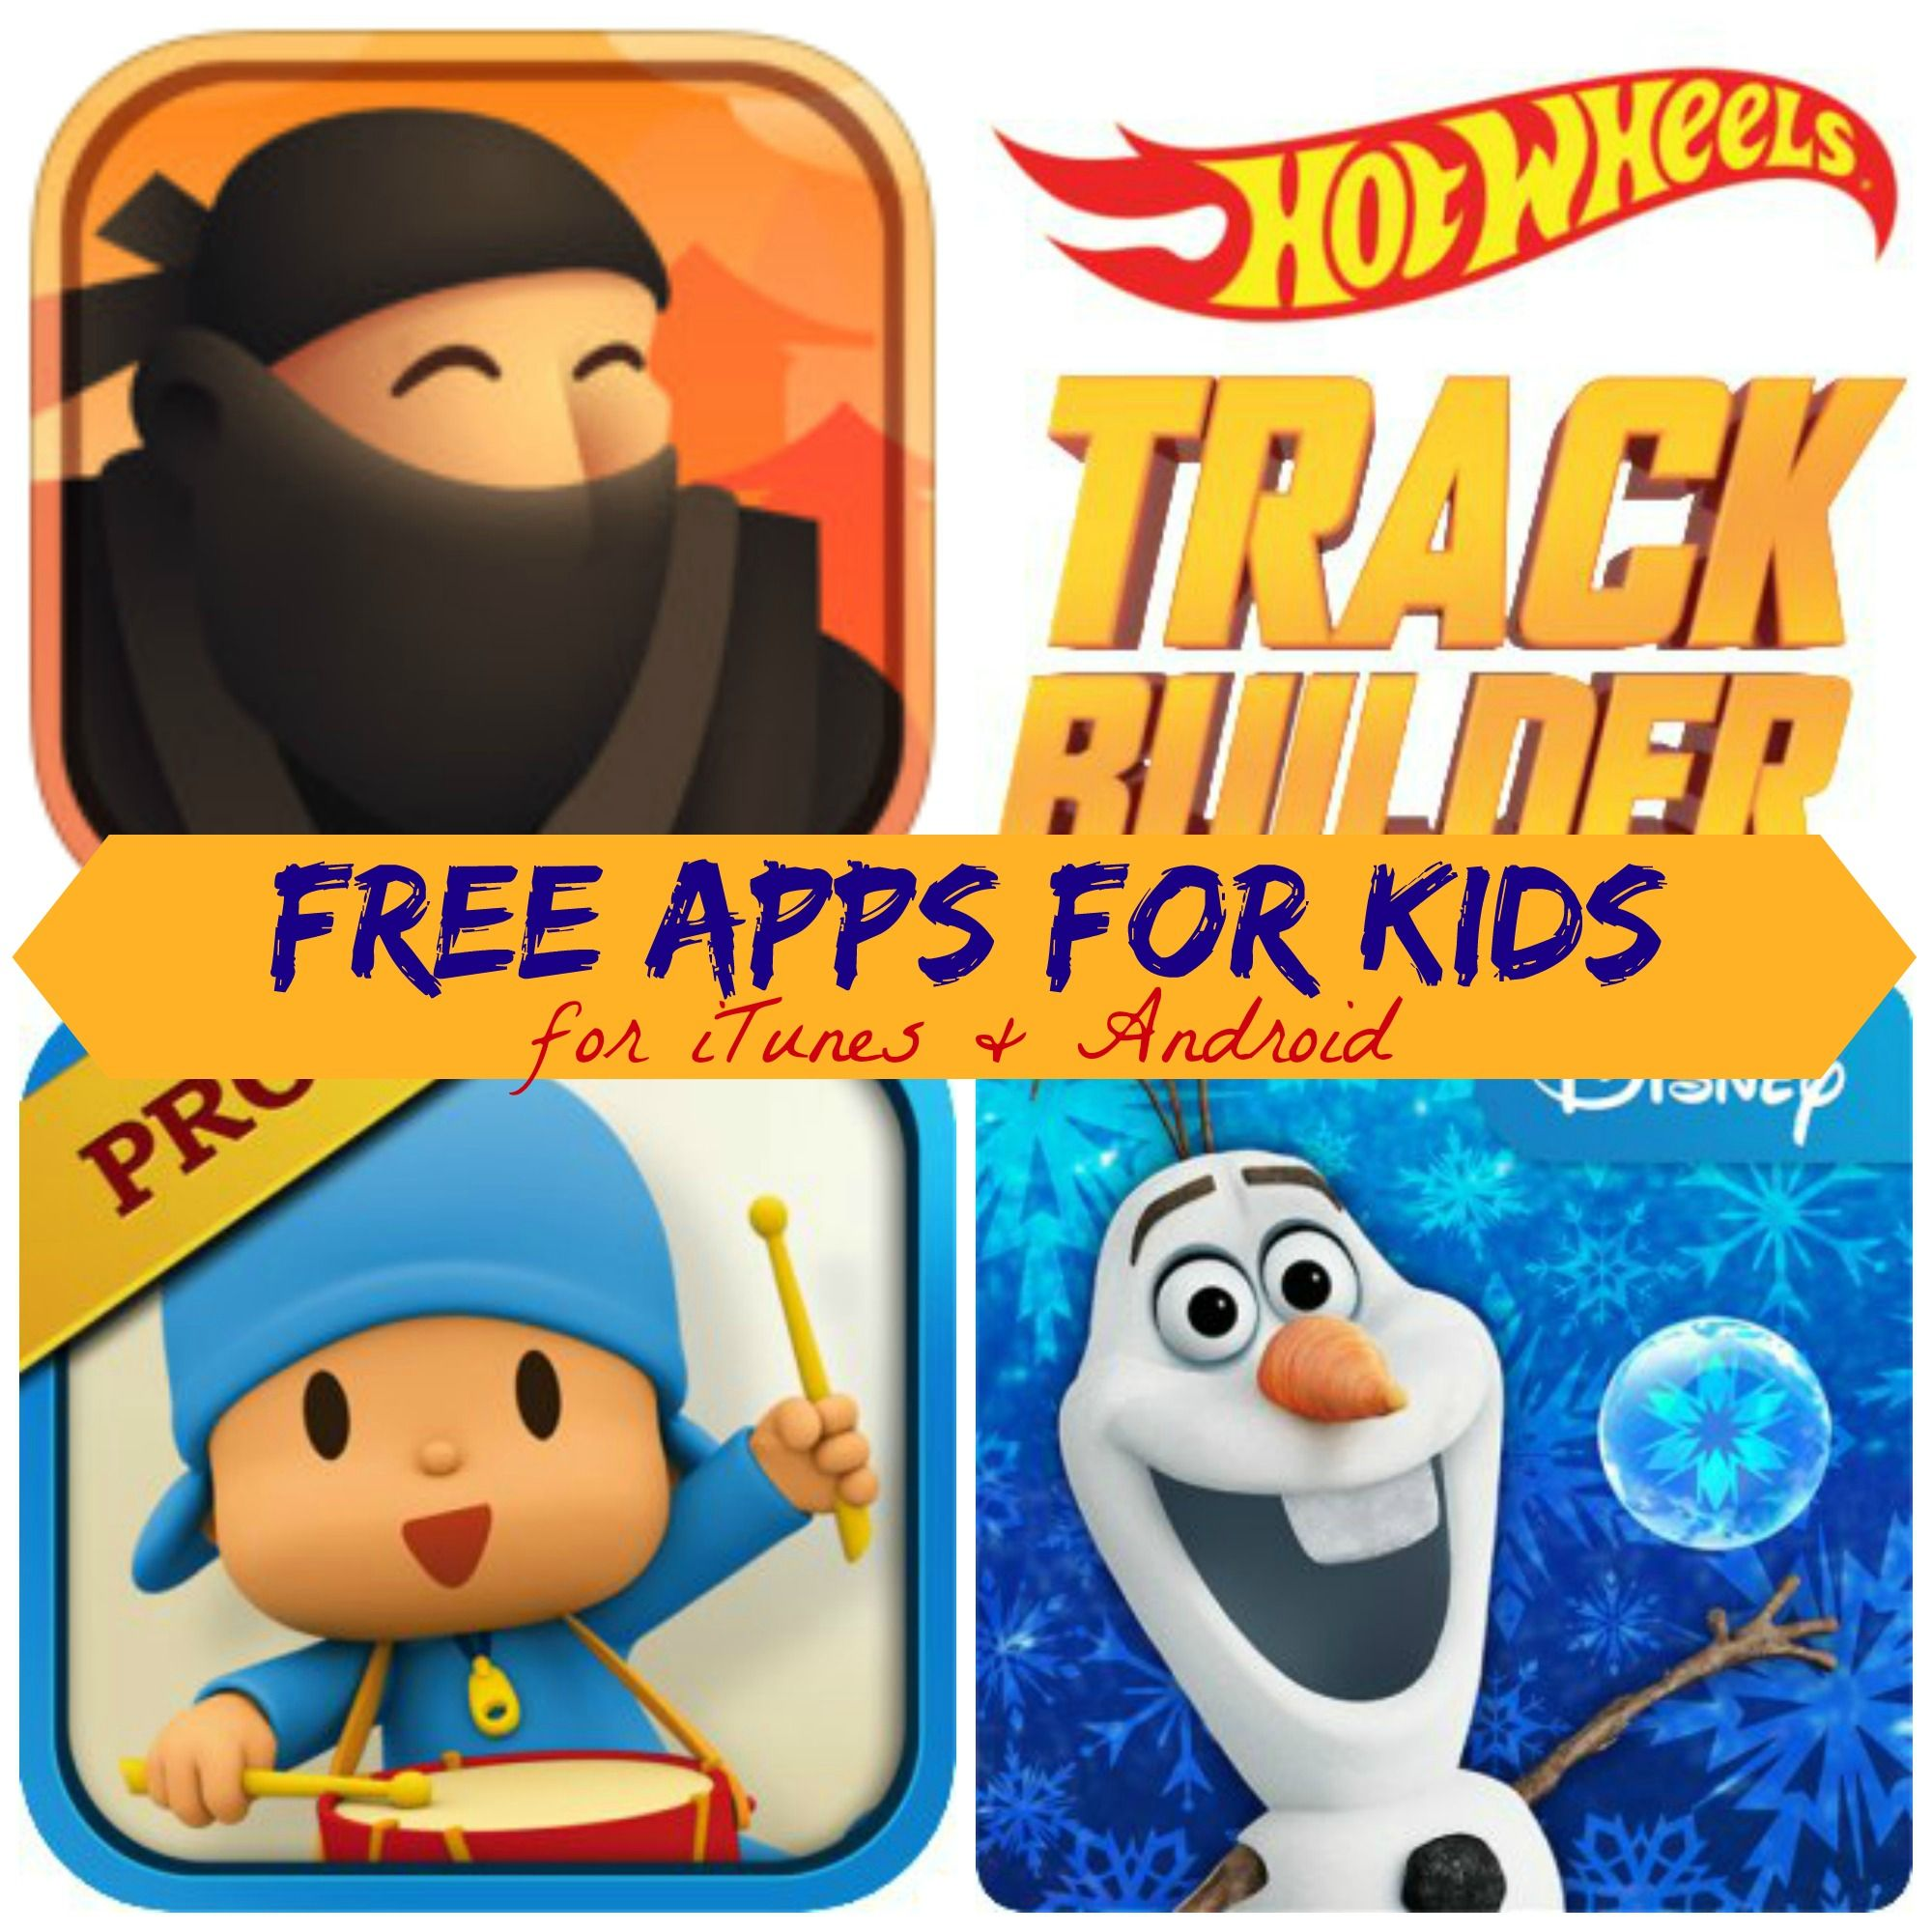 Free iTunes & Android Apps for Kids Zooistry, Hot Wheels